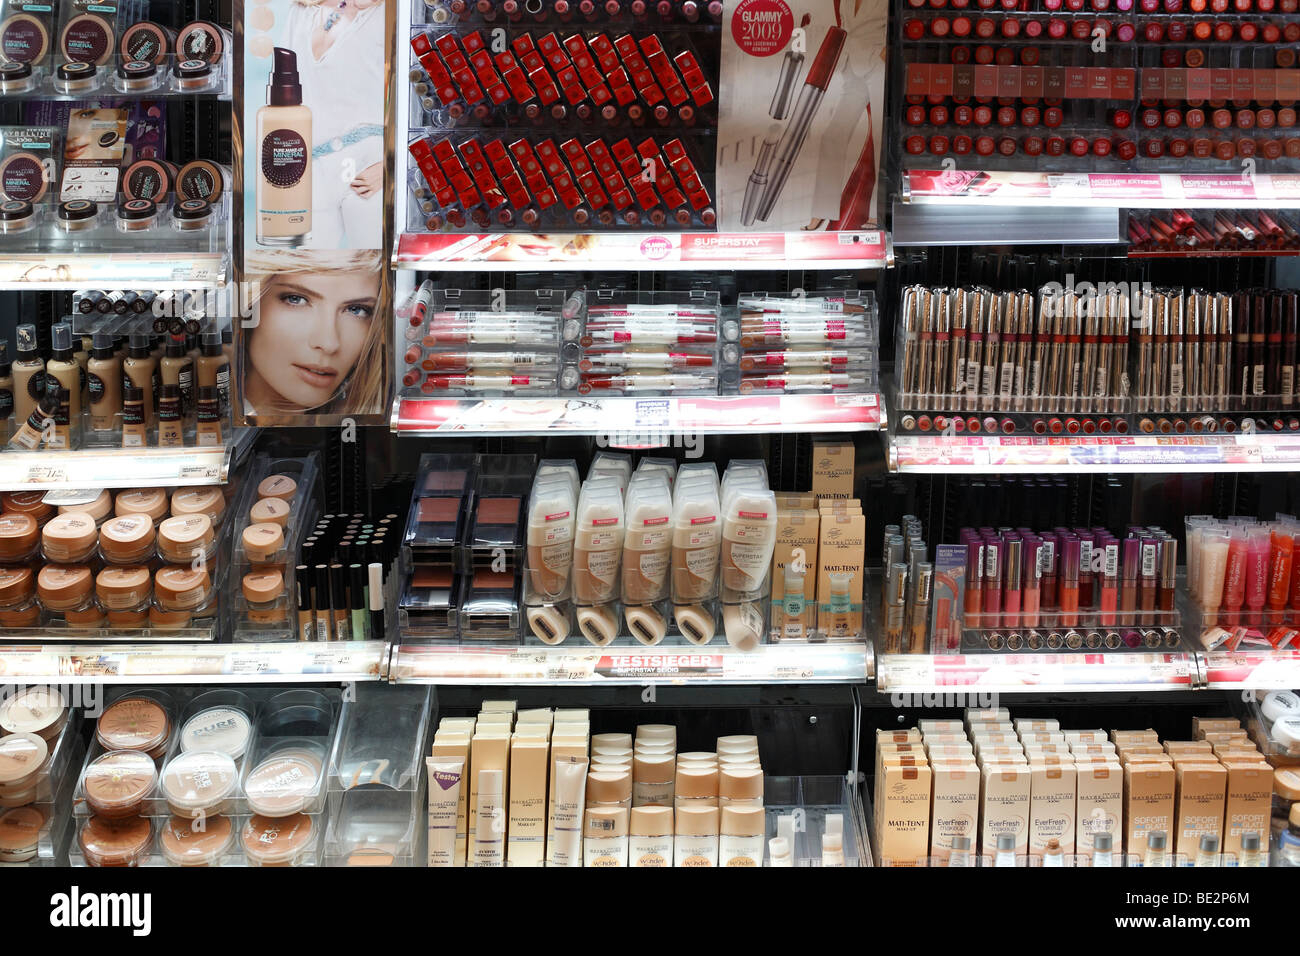 cosmetic shelf in a chemist's shop - Stock Image